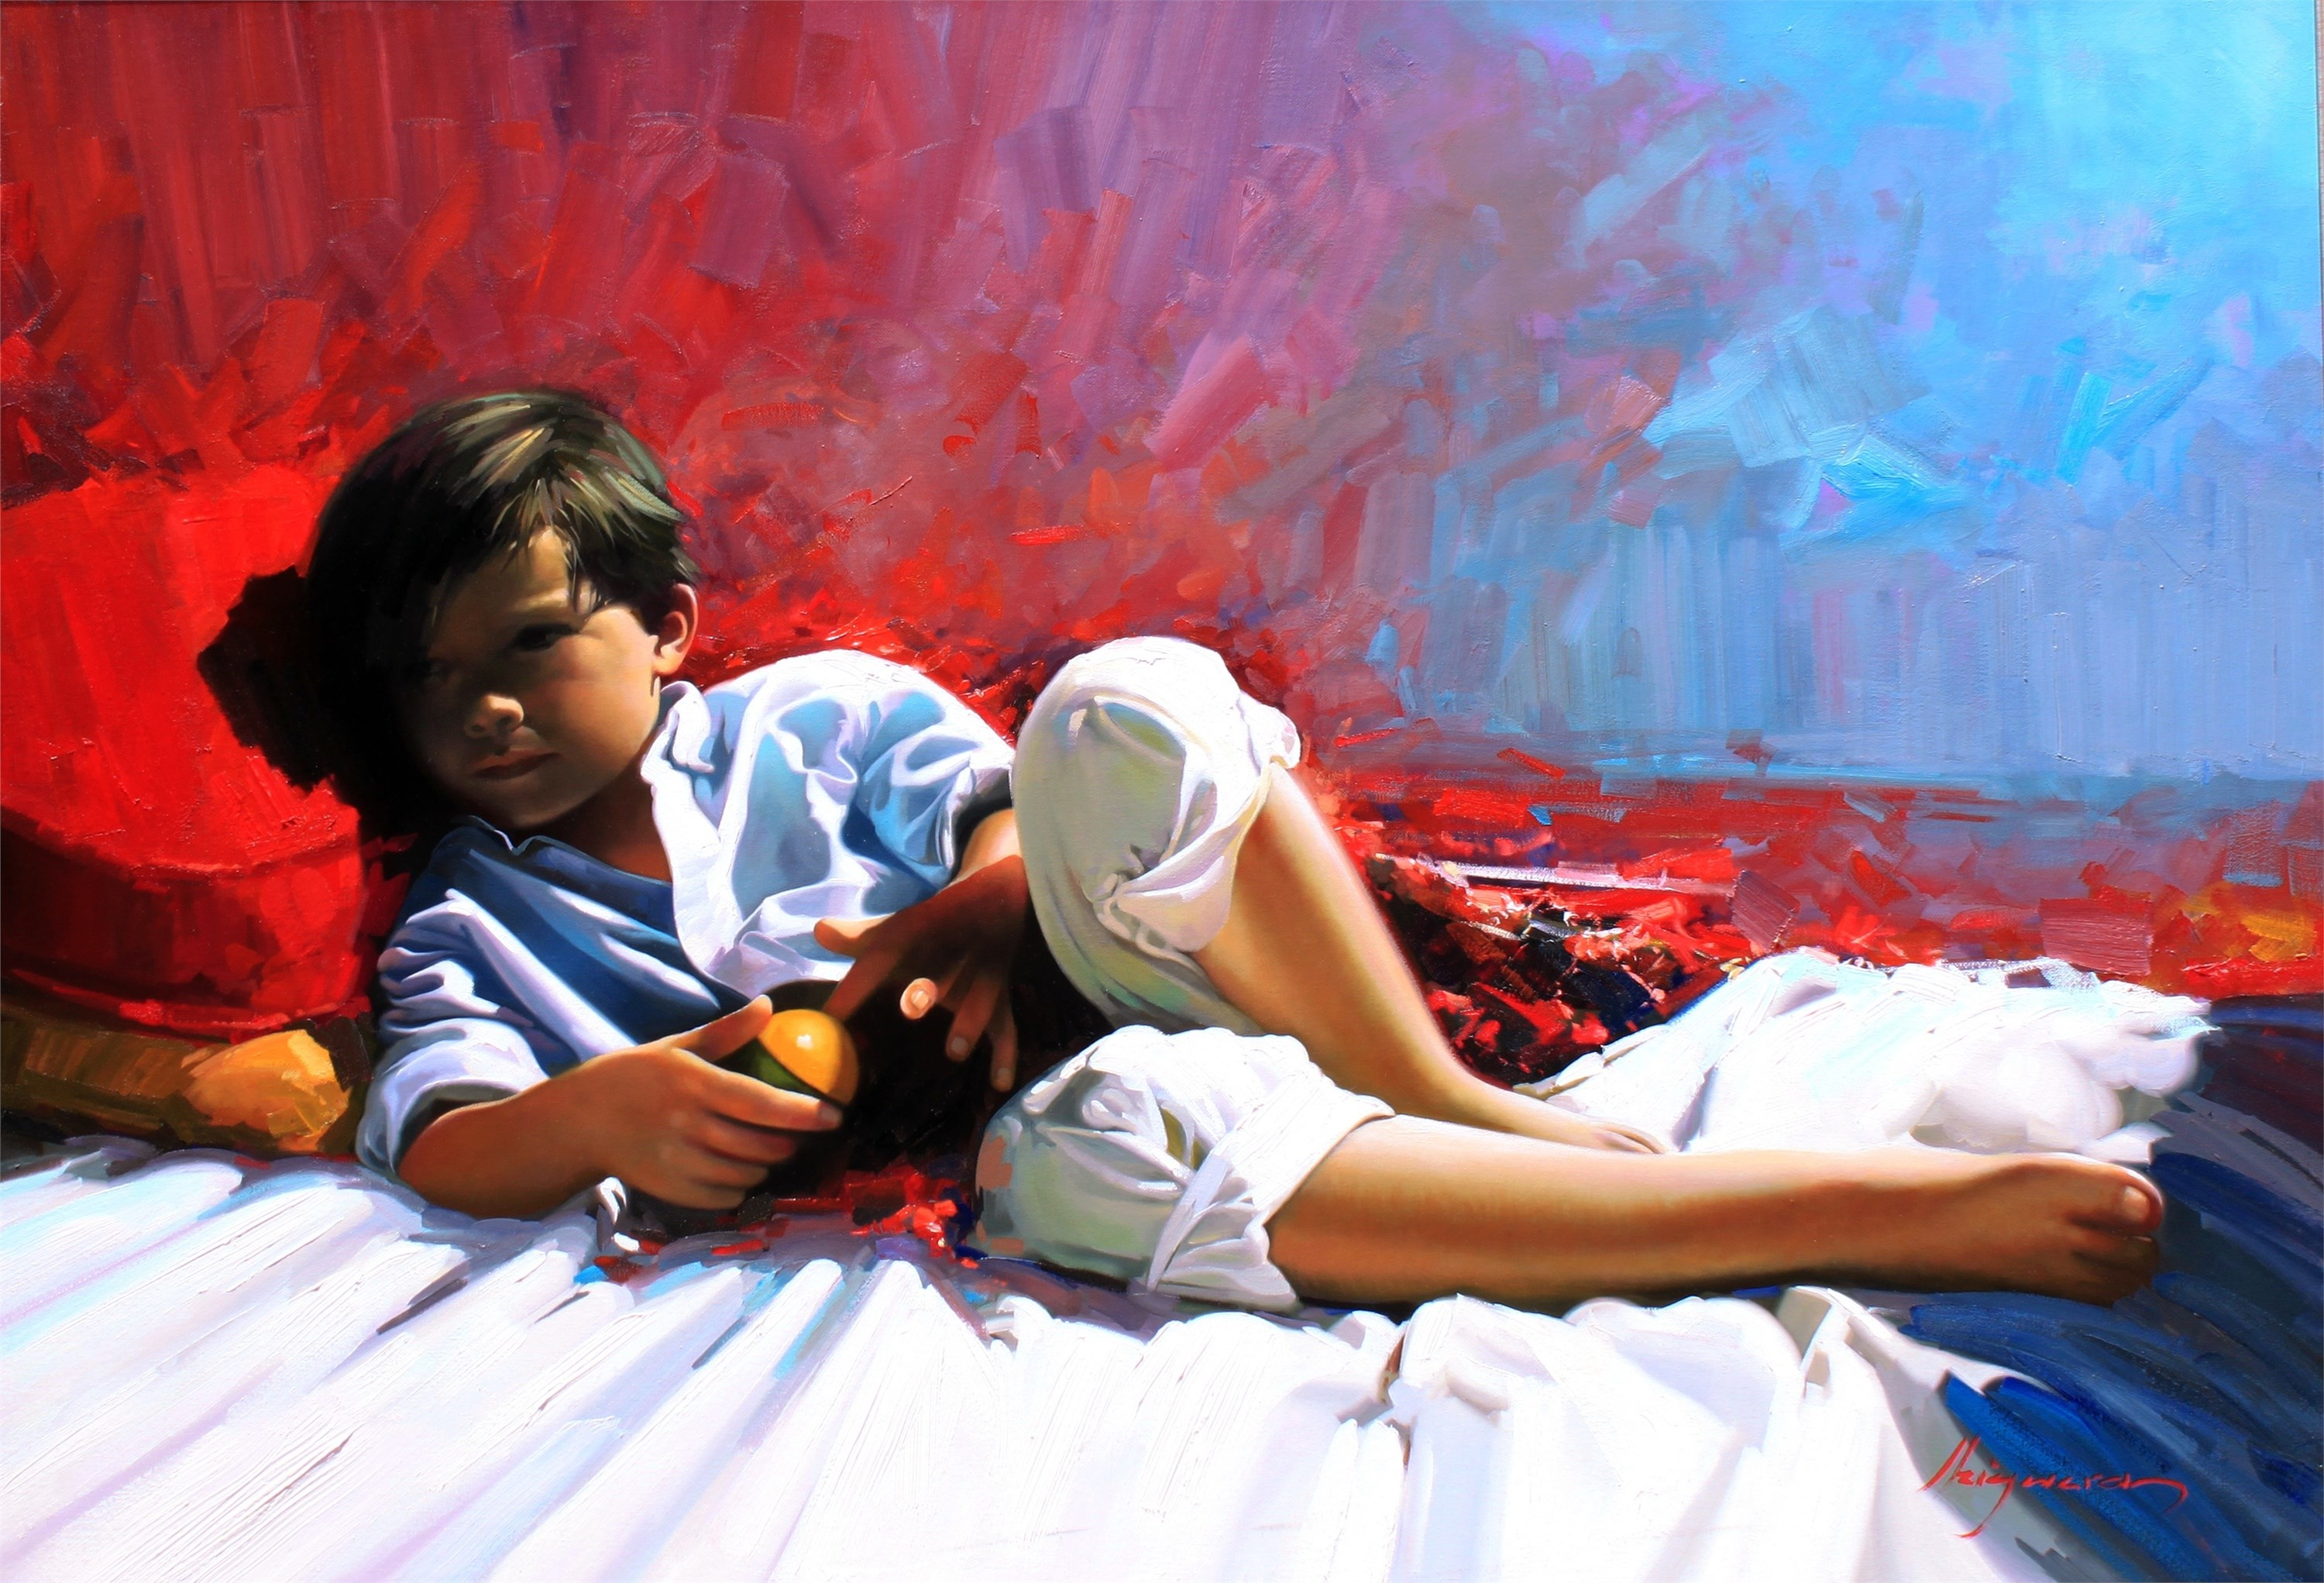 Descanso, original Human Figure Canvas Painting by Jose Higuera